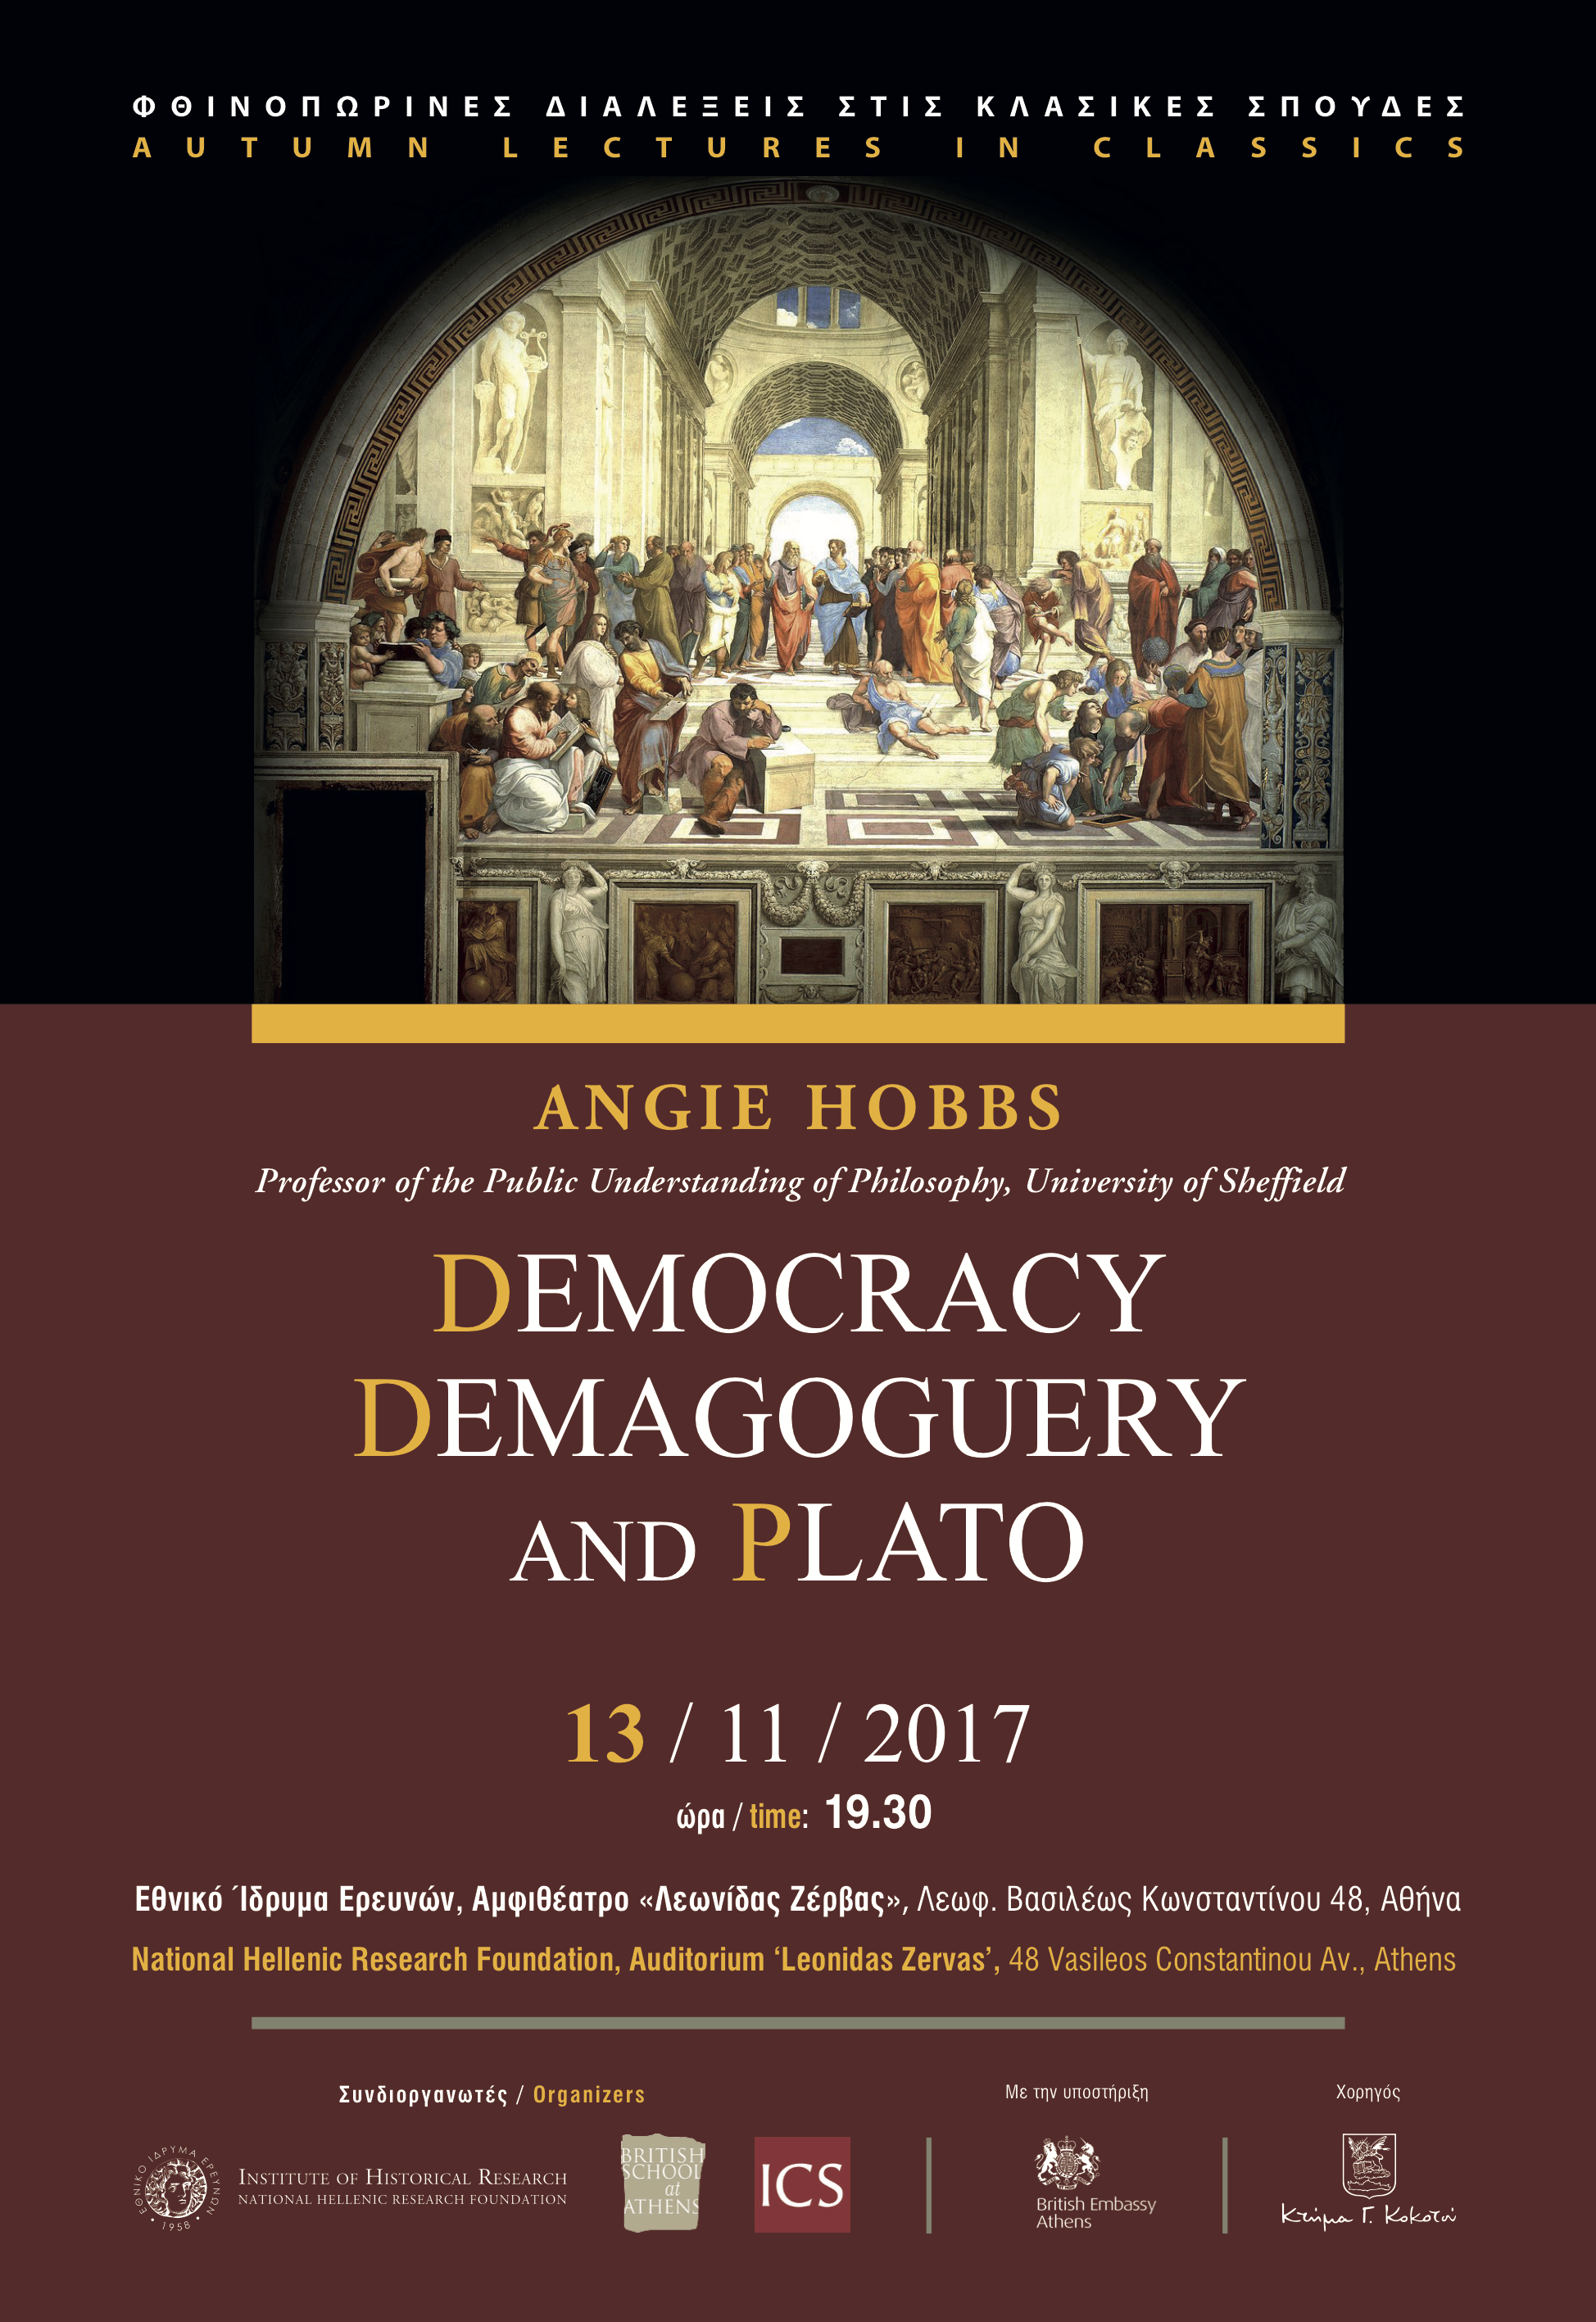 2017-11-13 National Hellenic Research Foundation Angie Hobbs.png